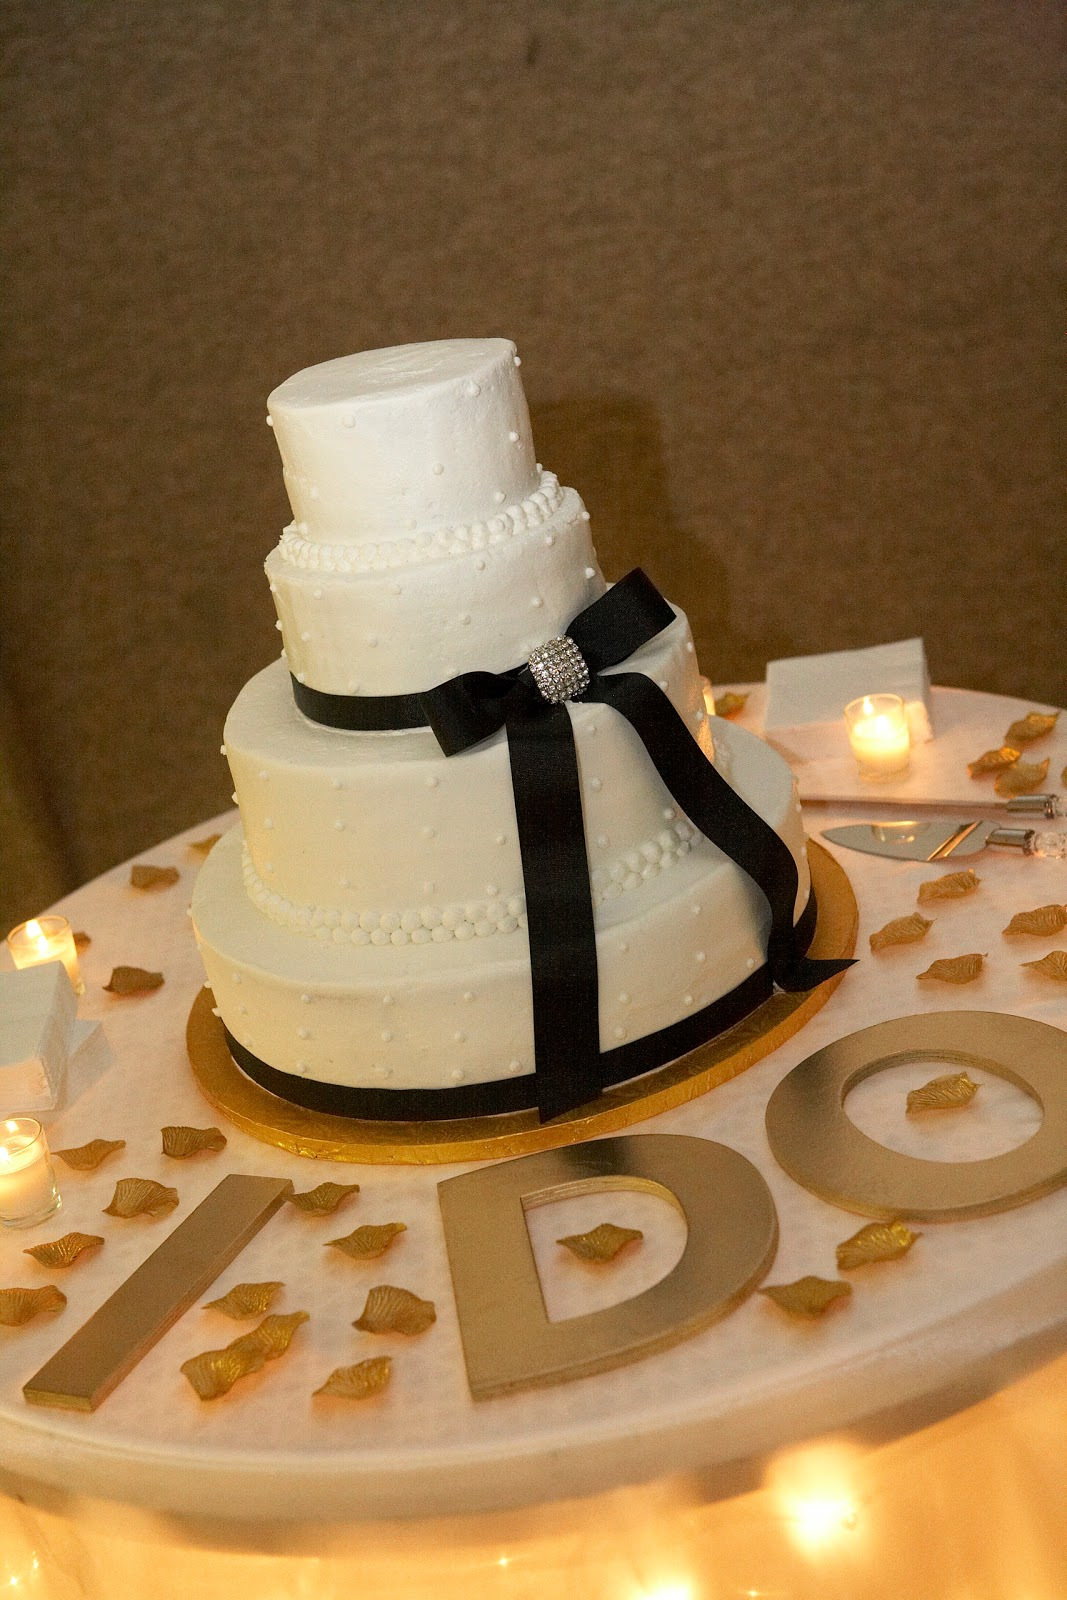 Wedding Cake Display Table on Pinterest Cake Table ...